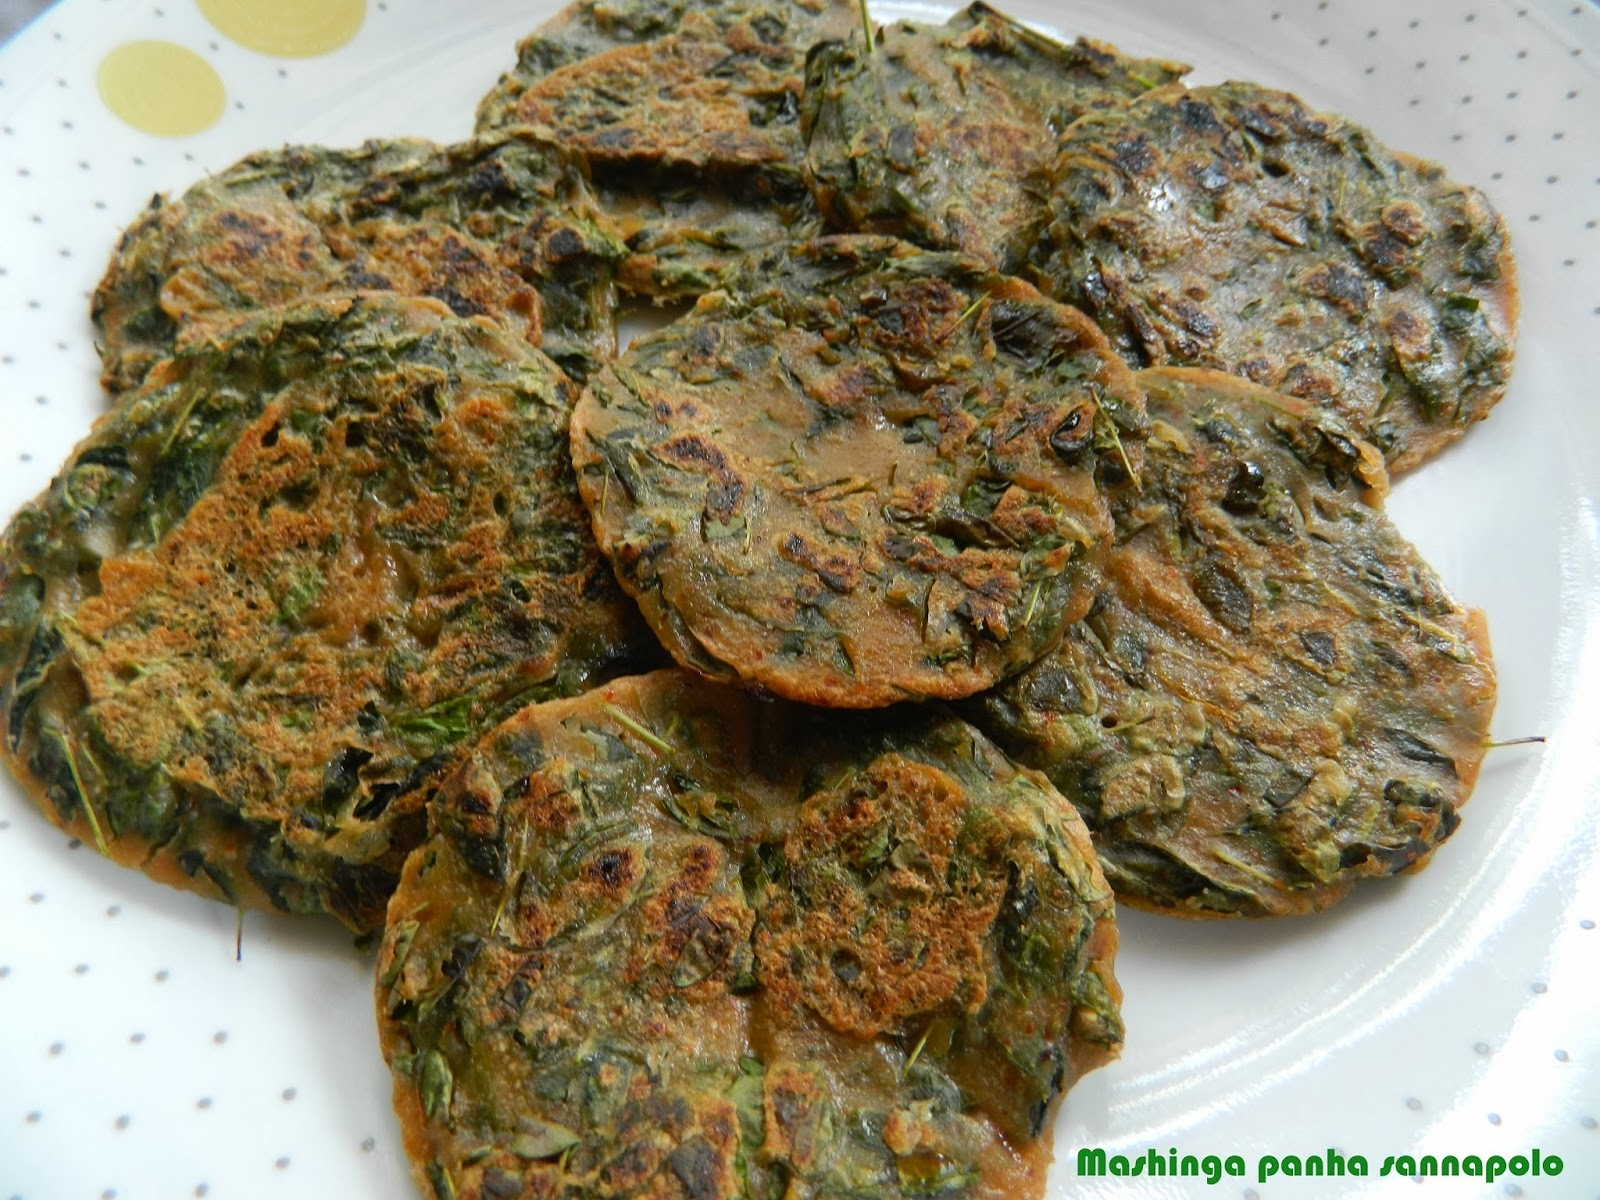 Spicy drumstick leaves dosa/ Mashinga Panha sannapolo